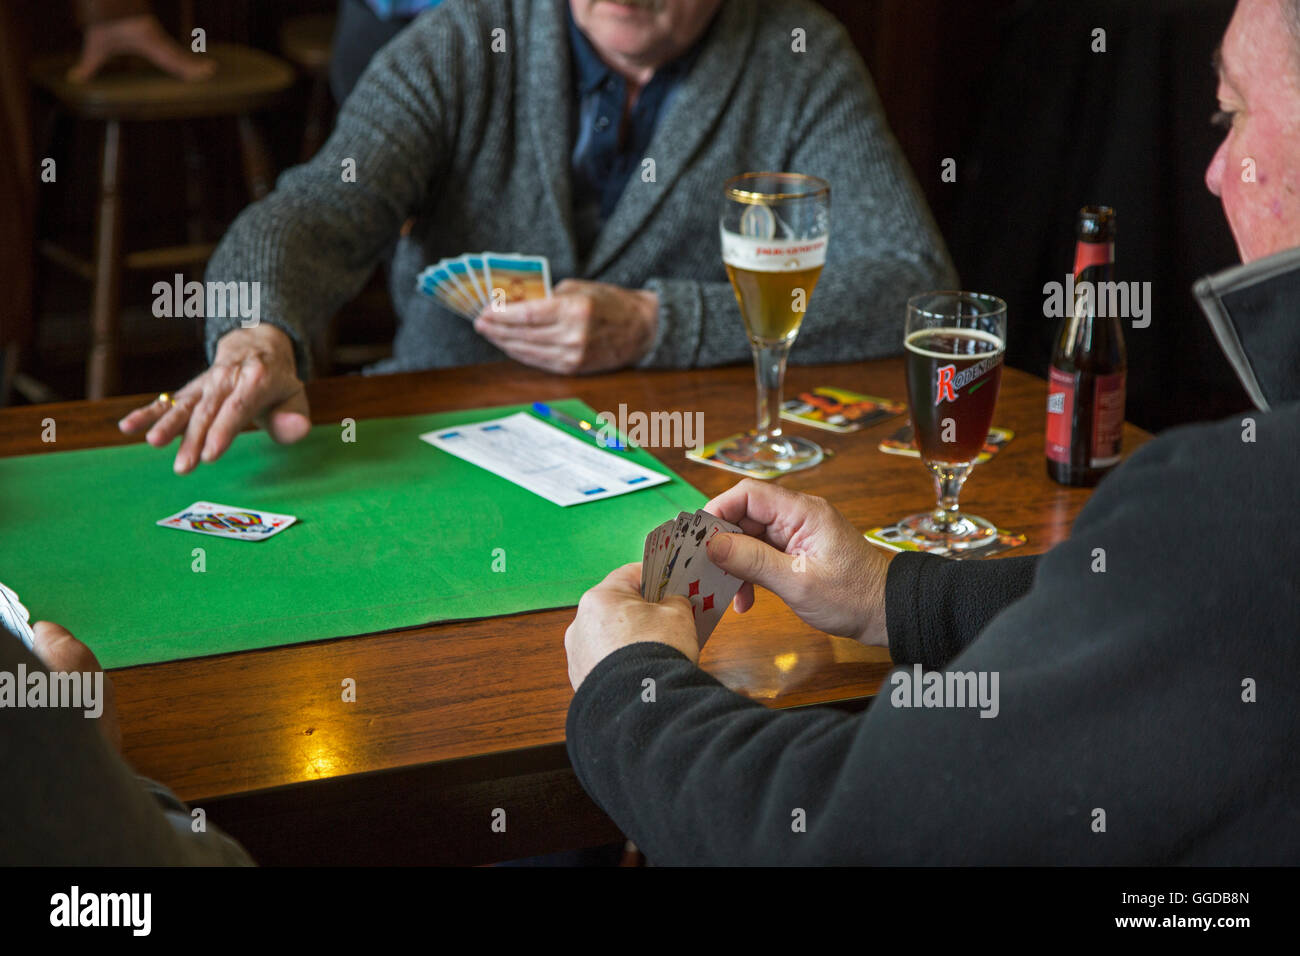 Elderly card players playing cards on table in pub - Stock Image